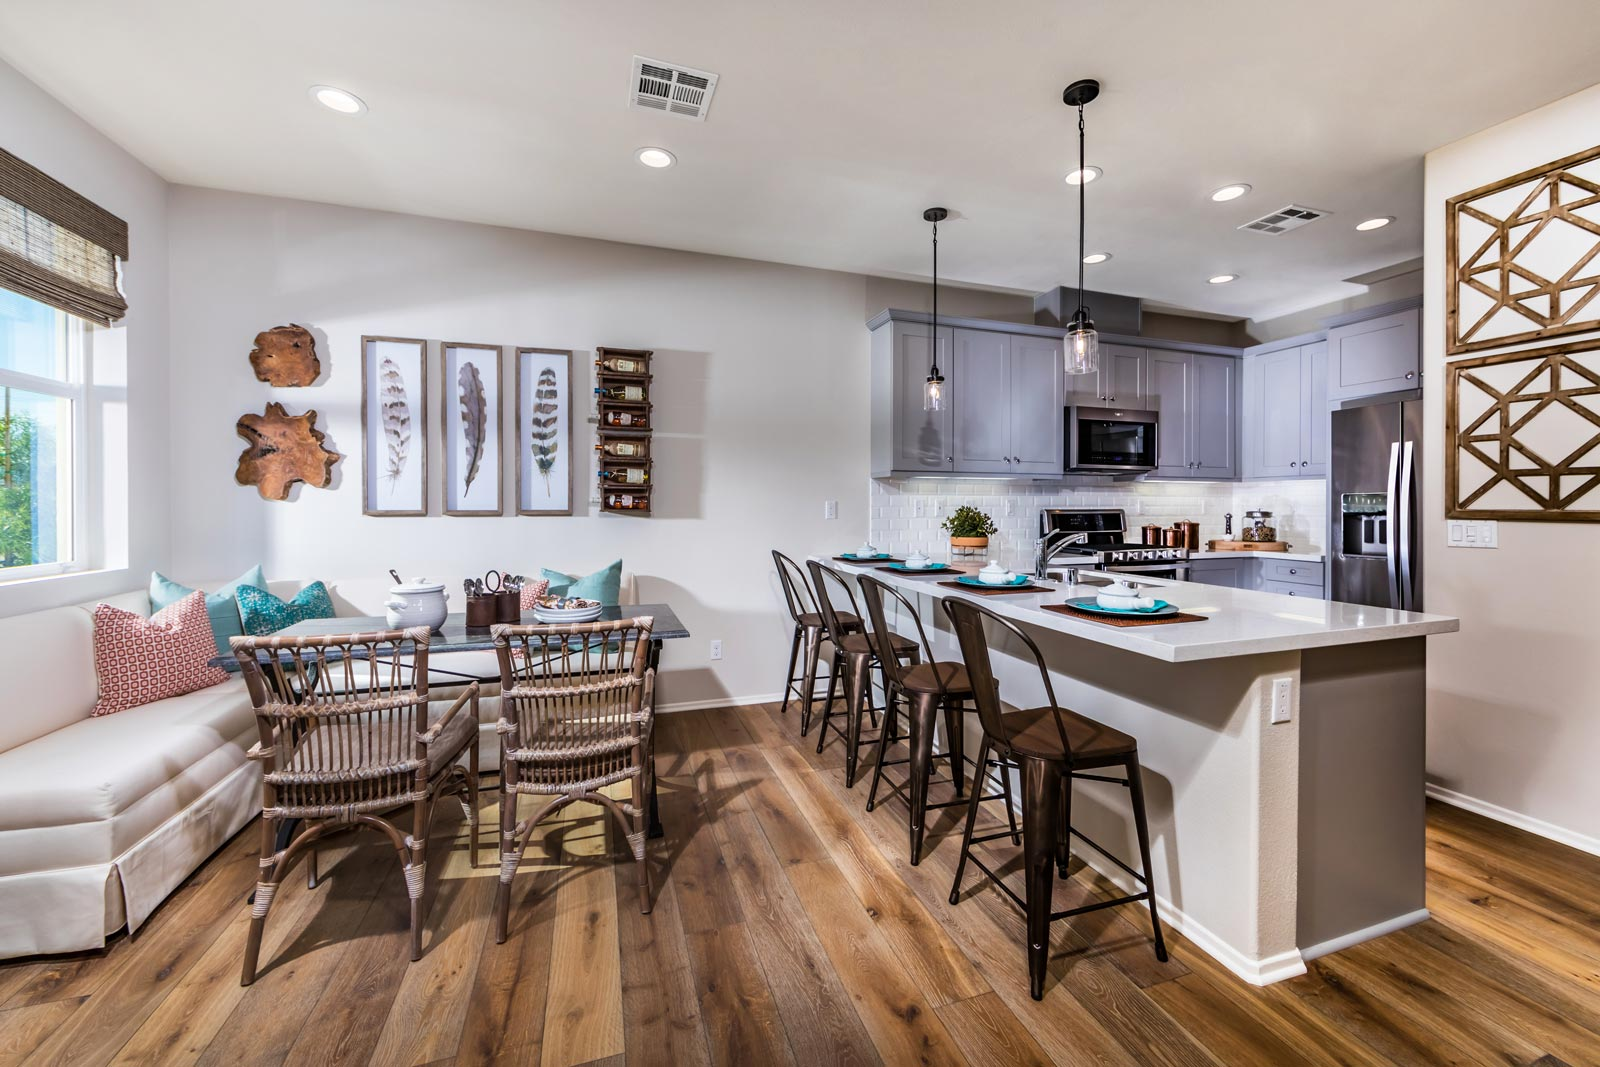 Plan 2 Kitchen | Solstice at New Haven in Ontario Ranch, CA | Brookfield Residential